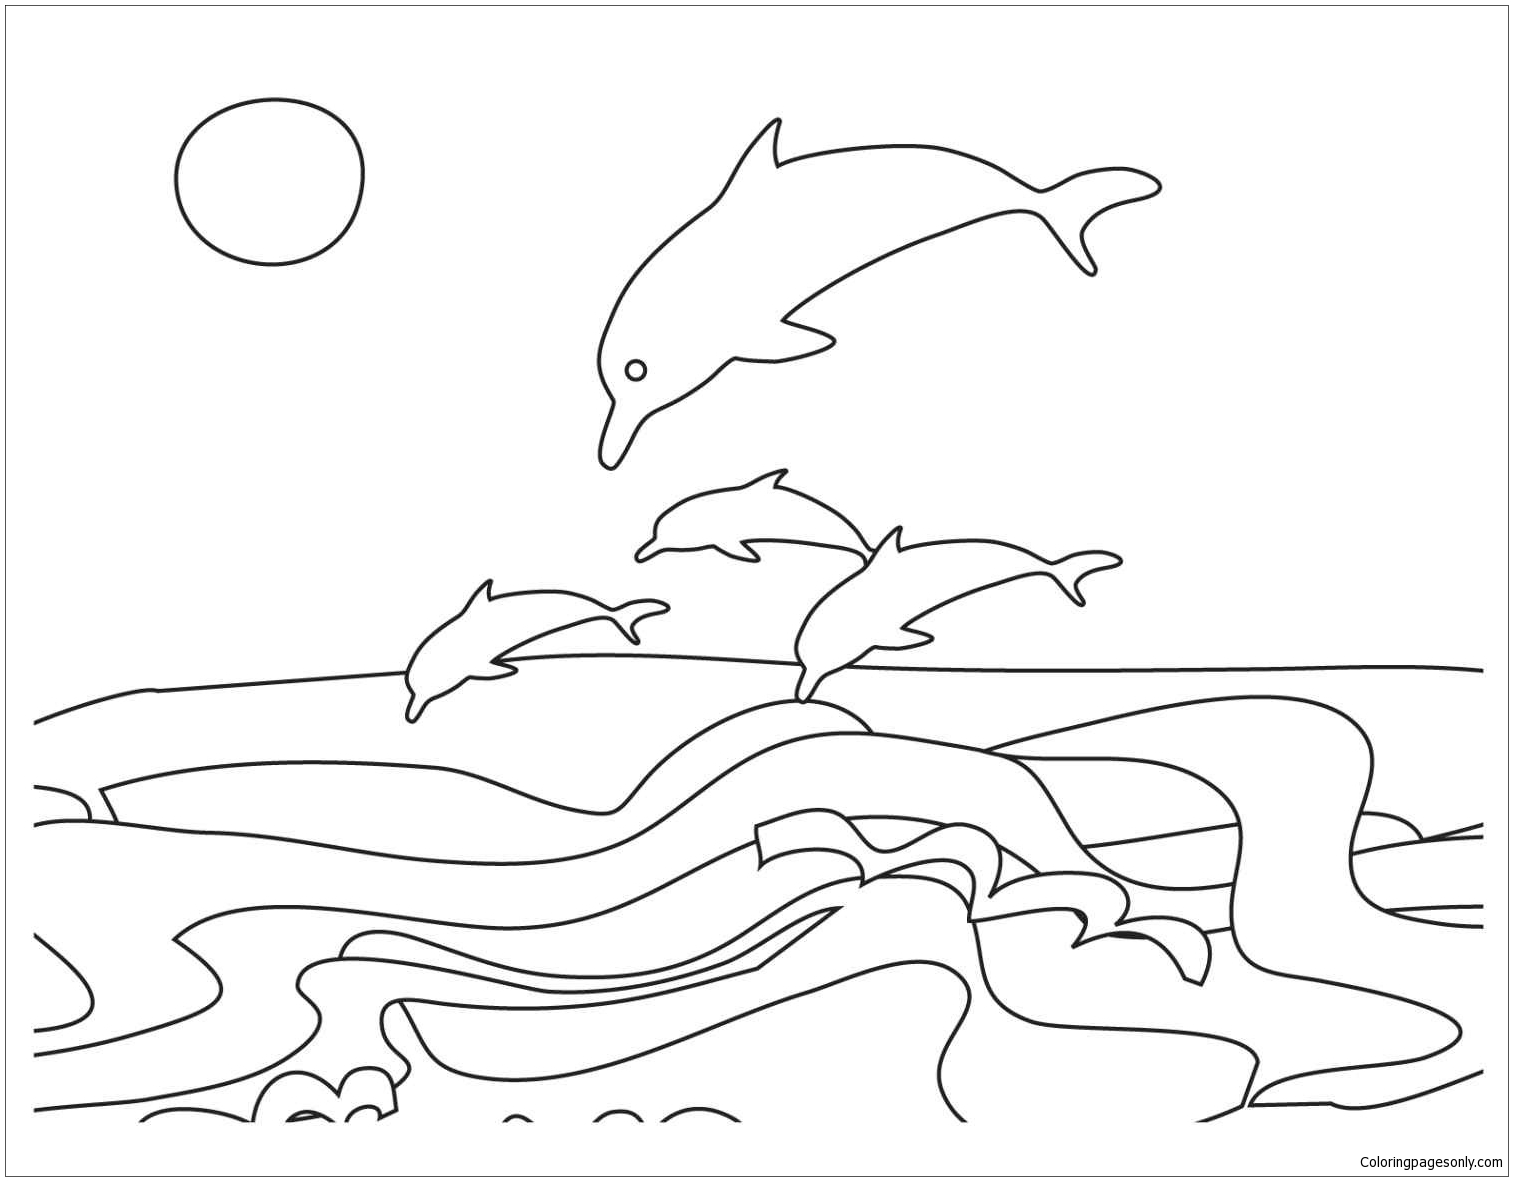 tropical beach coloring pages a beautiful tropical sandy beach coloring page a pages tropical beach coloring